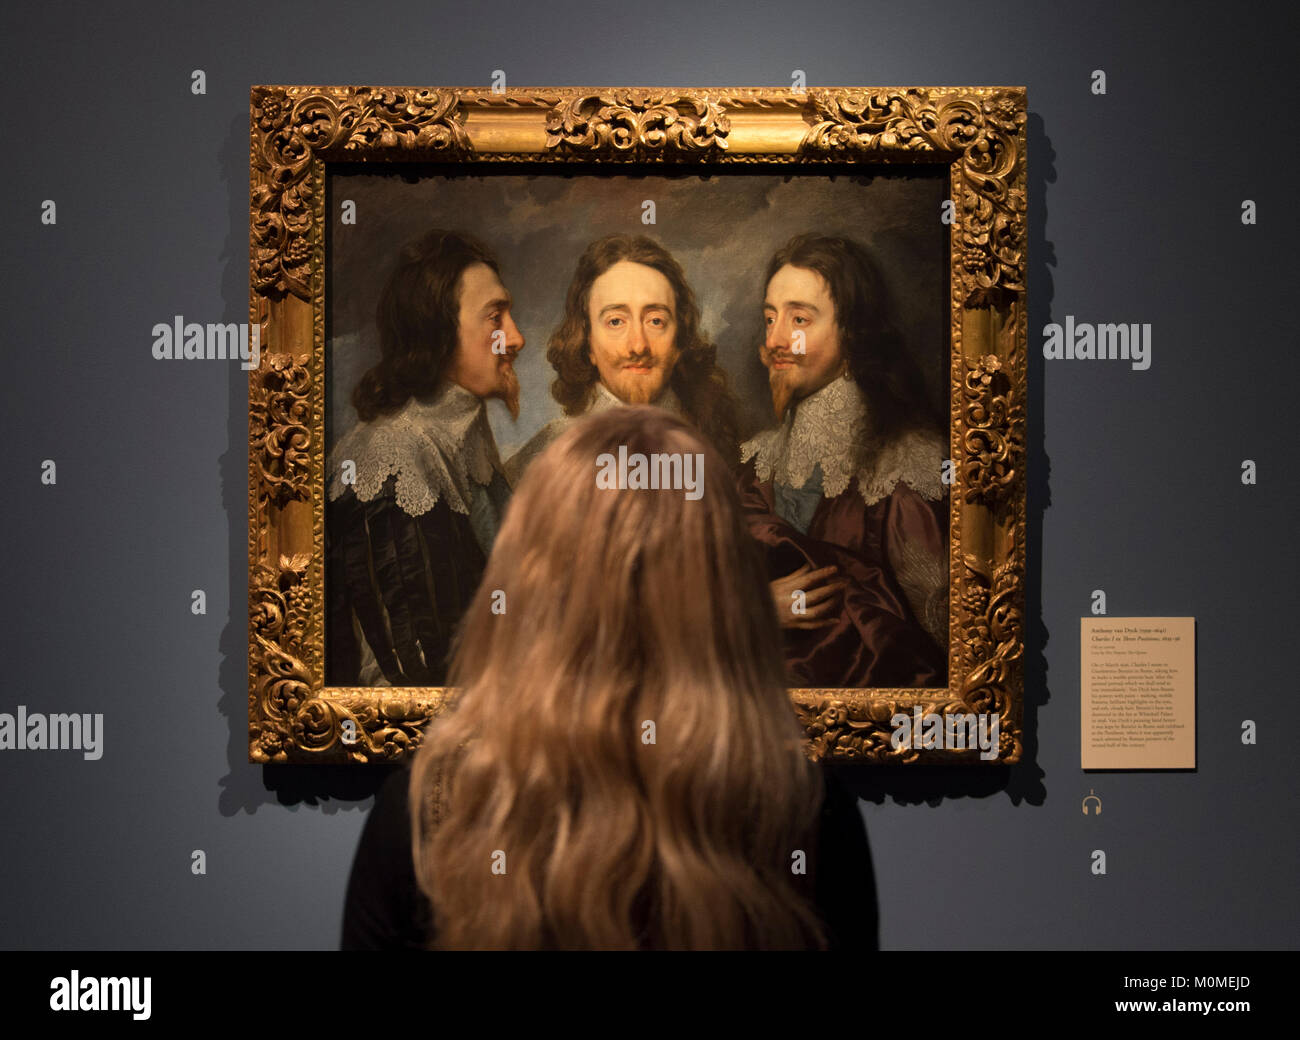 RA, London, UK. 23rd Jan, 2018. Charles 1: King and Collector reunites the greatest masterpieces of a collection sold off and scattered across Europe after the execution of Charles 1 in 1649. The exhibition runs from 27 January - 15 April 2018. Credit: Malcolm Park/Alamy Live News. Stock Photo